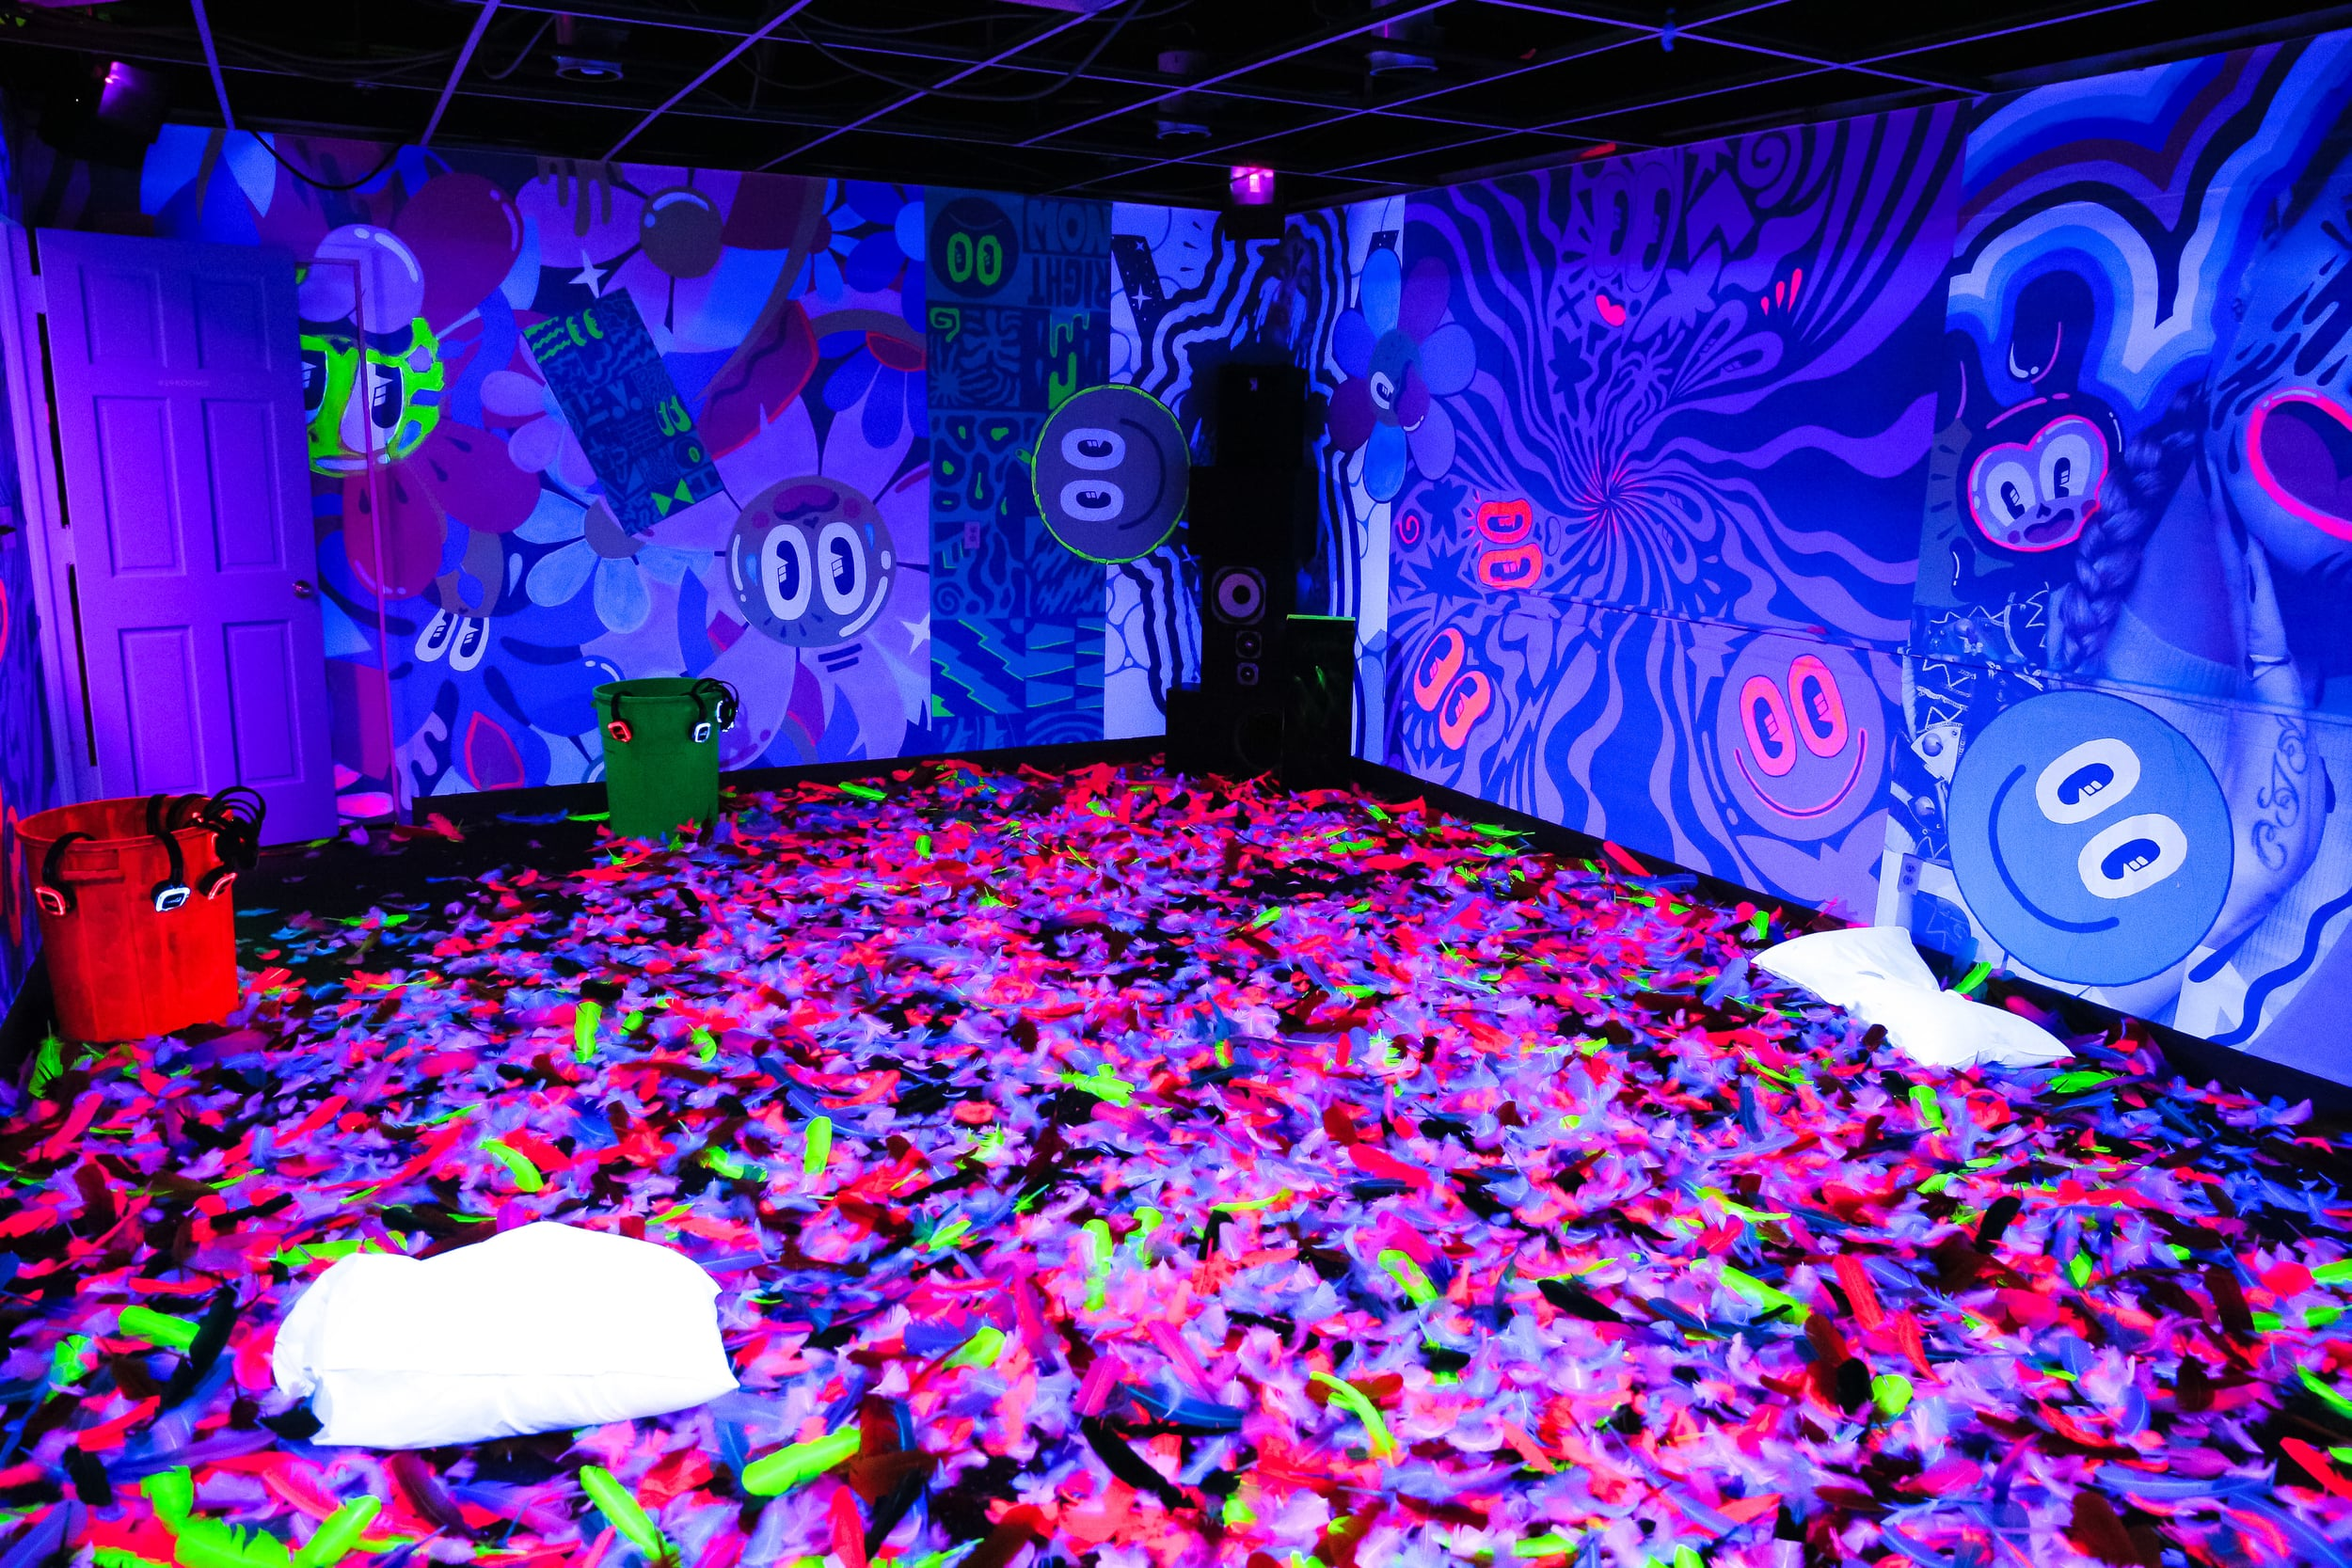 Refinery 29 - 29 Rooms, 10th Year Annivesary Event